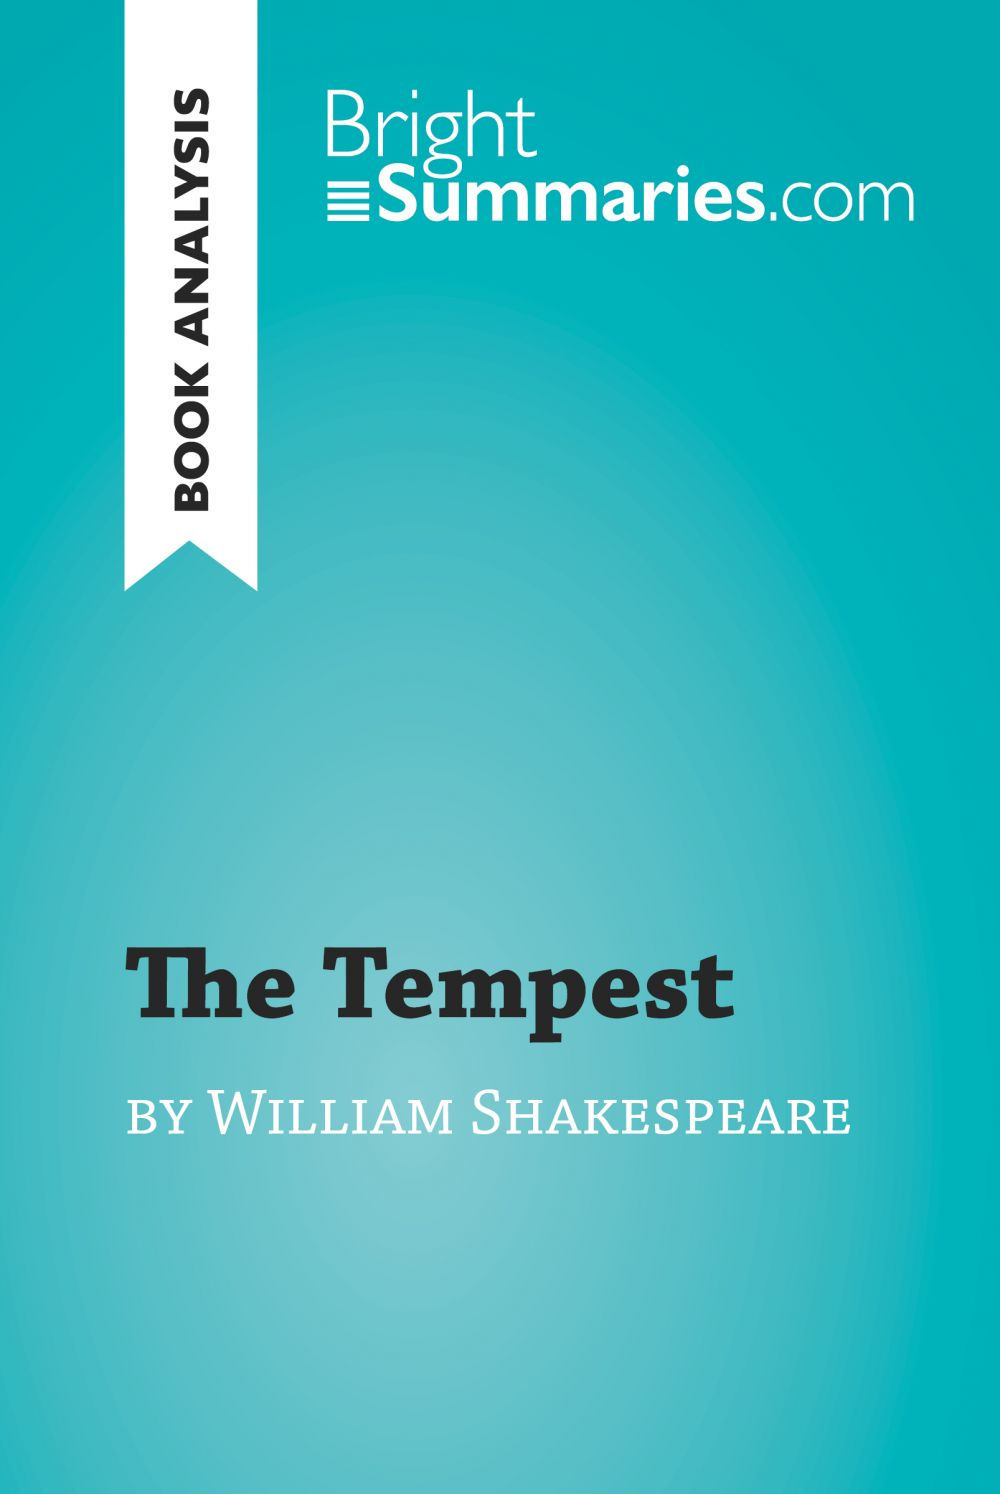 The Tempest by William Shakespeare (Book Analysis)